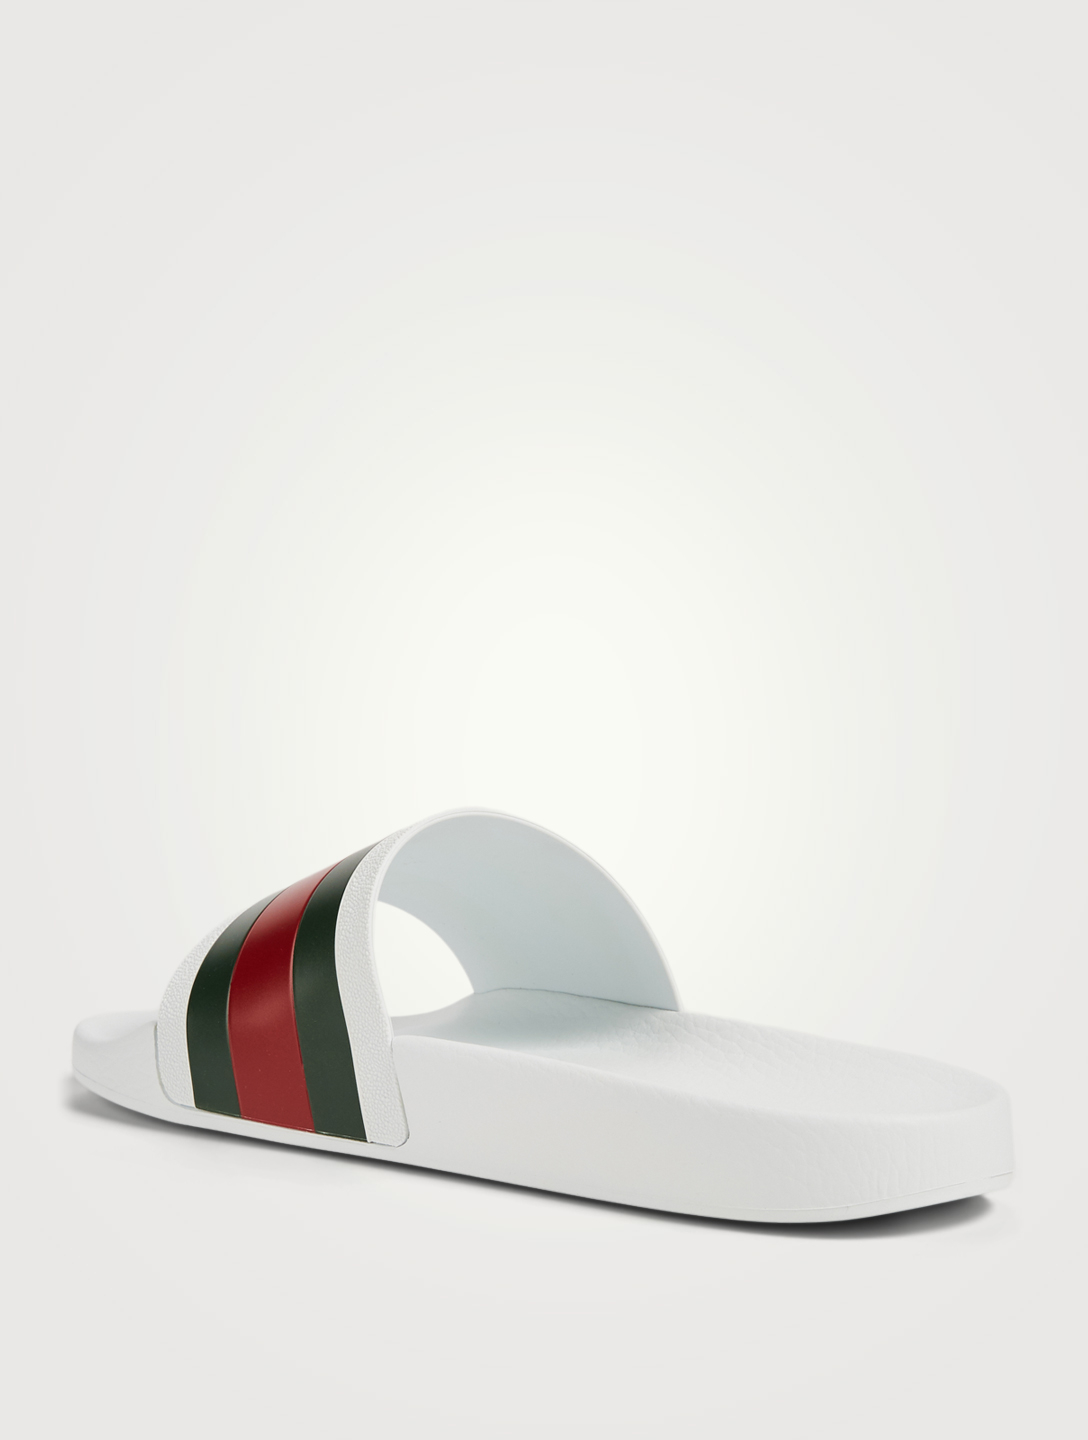 GUCCI Pursuit '72 Rubber Pool Slides Men's White